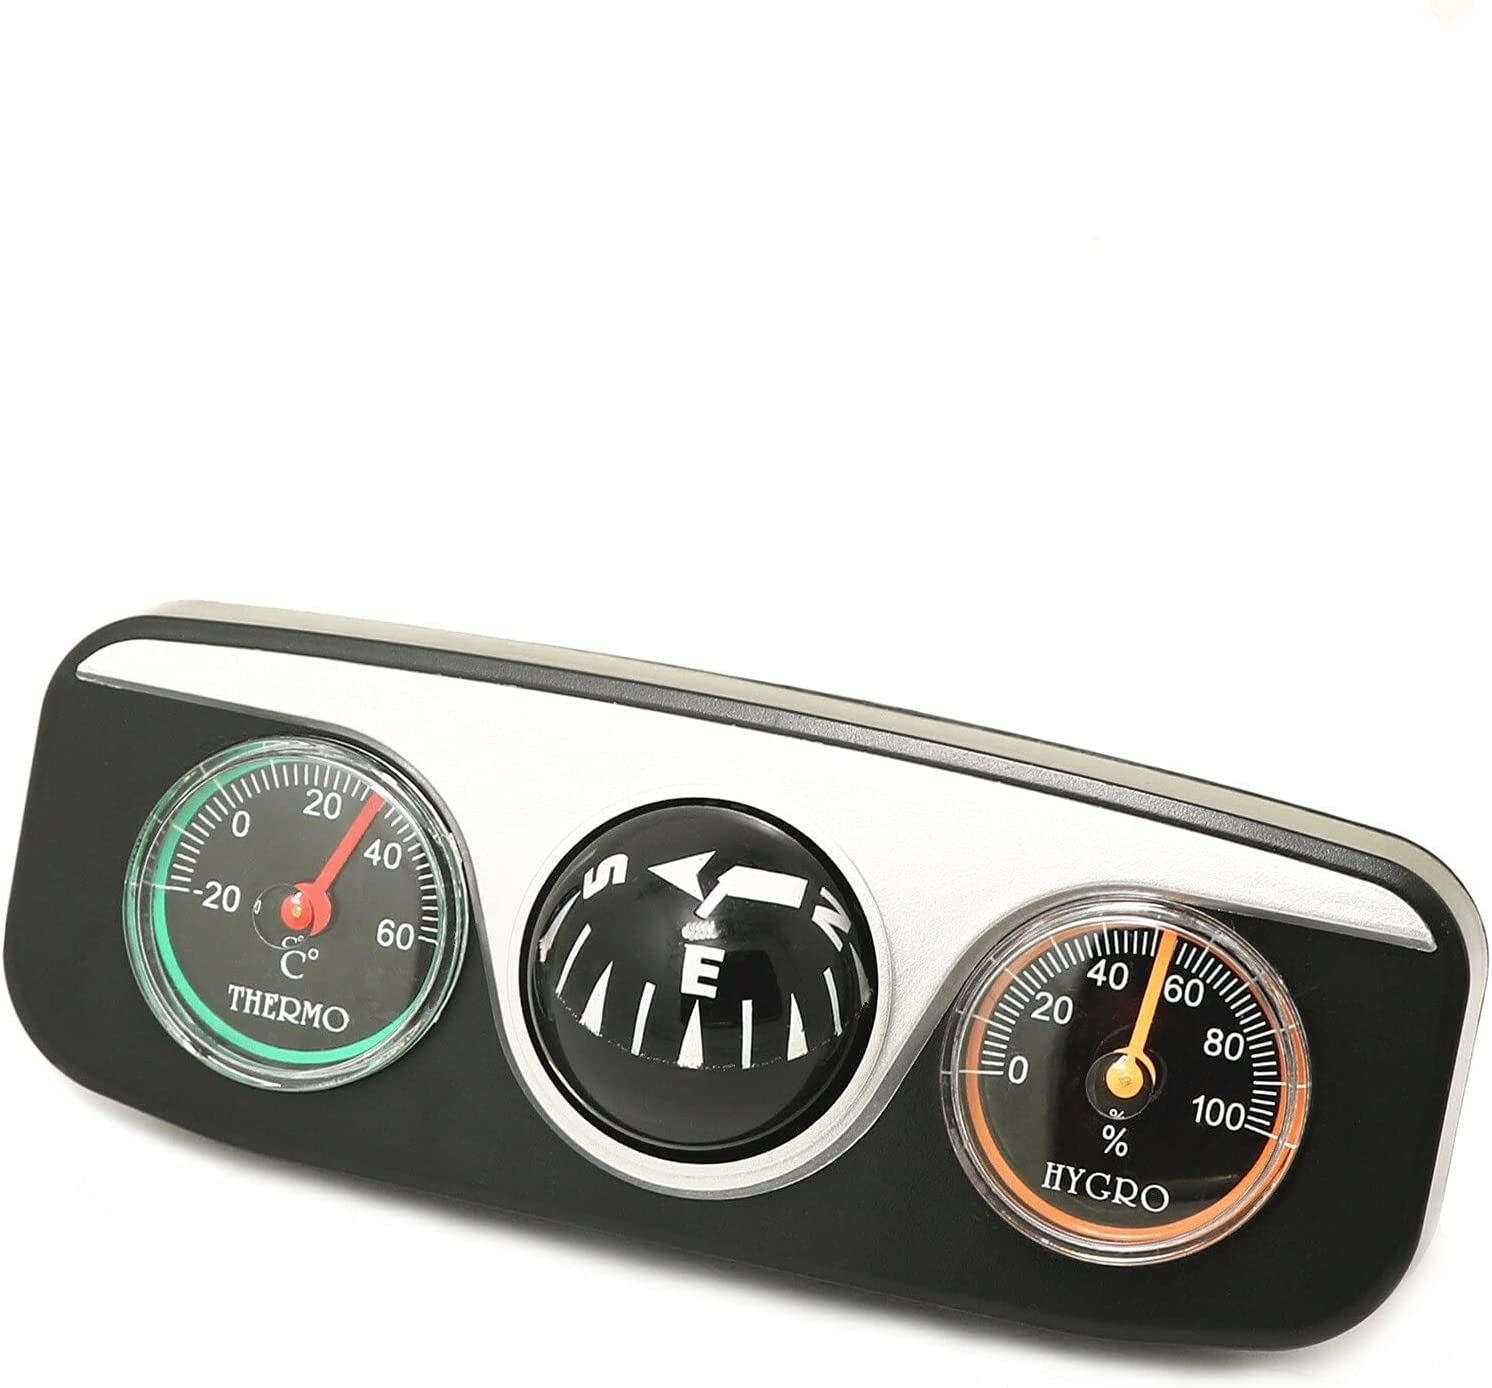 CFDYKRP ABS Car Vehicle Navigation Ball Compass Thermometer Hygr